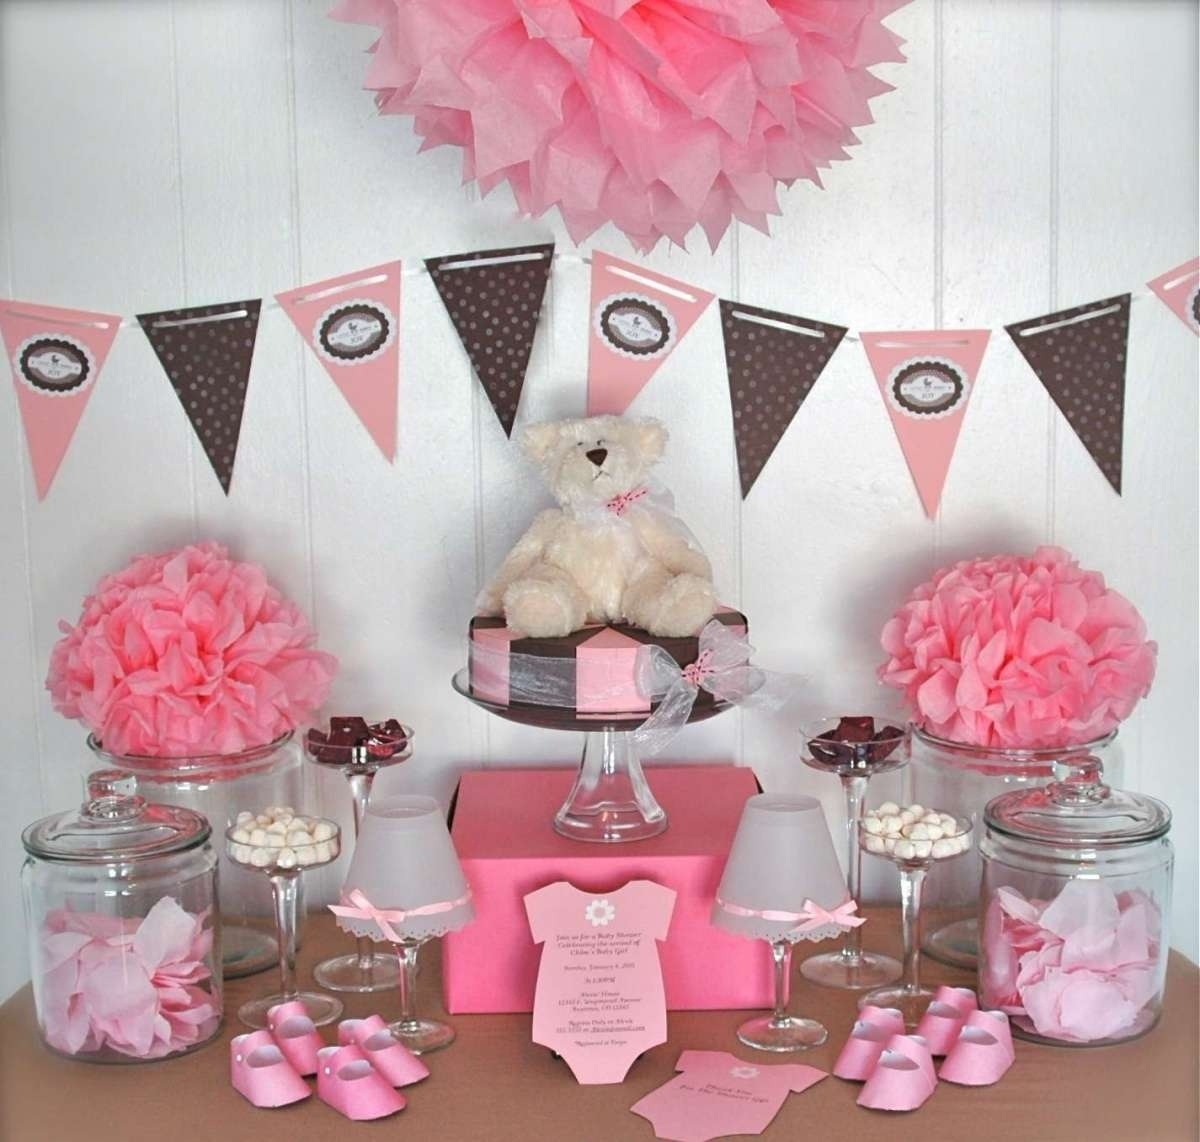 Glamorous 10 Trendy Ideas Para Decorar Baby Shower in New Sillas Para Baby Shower